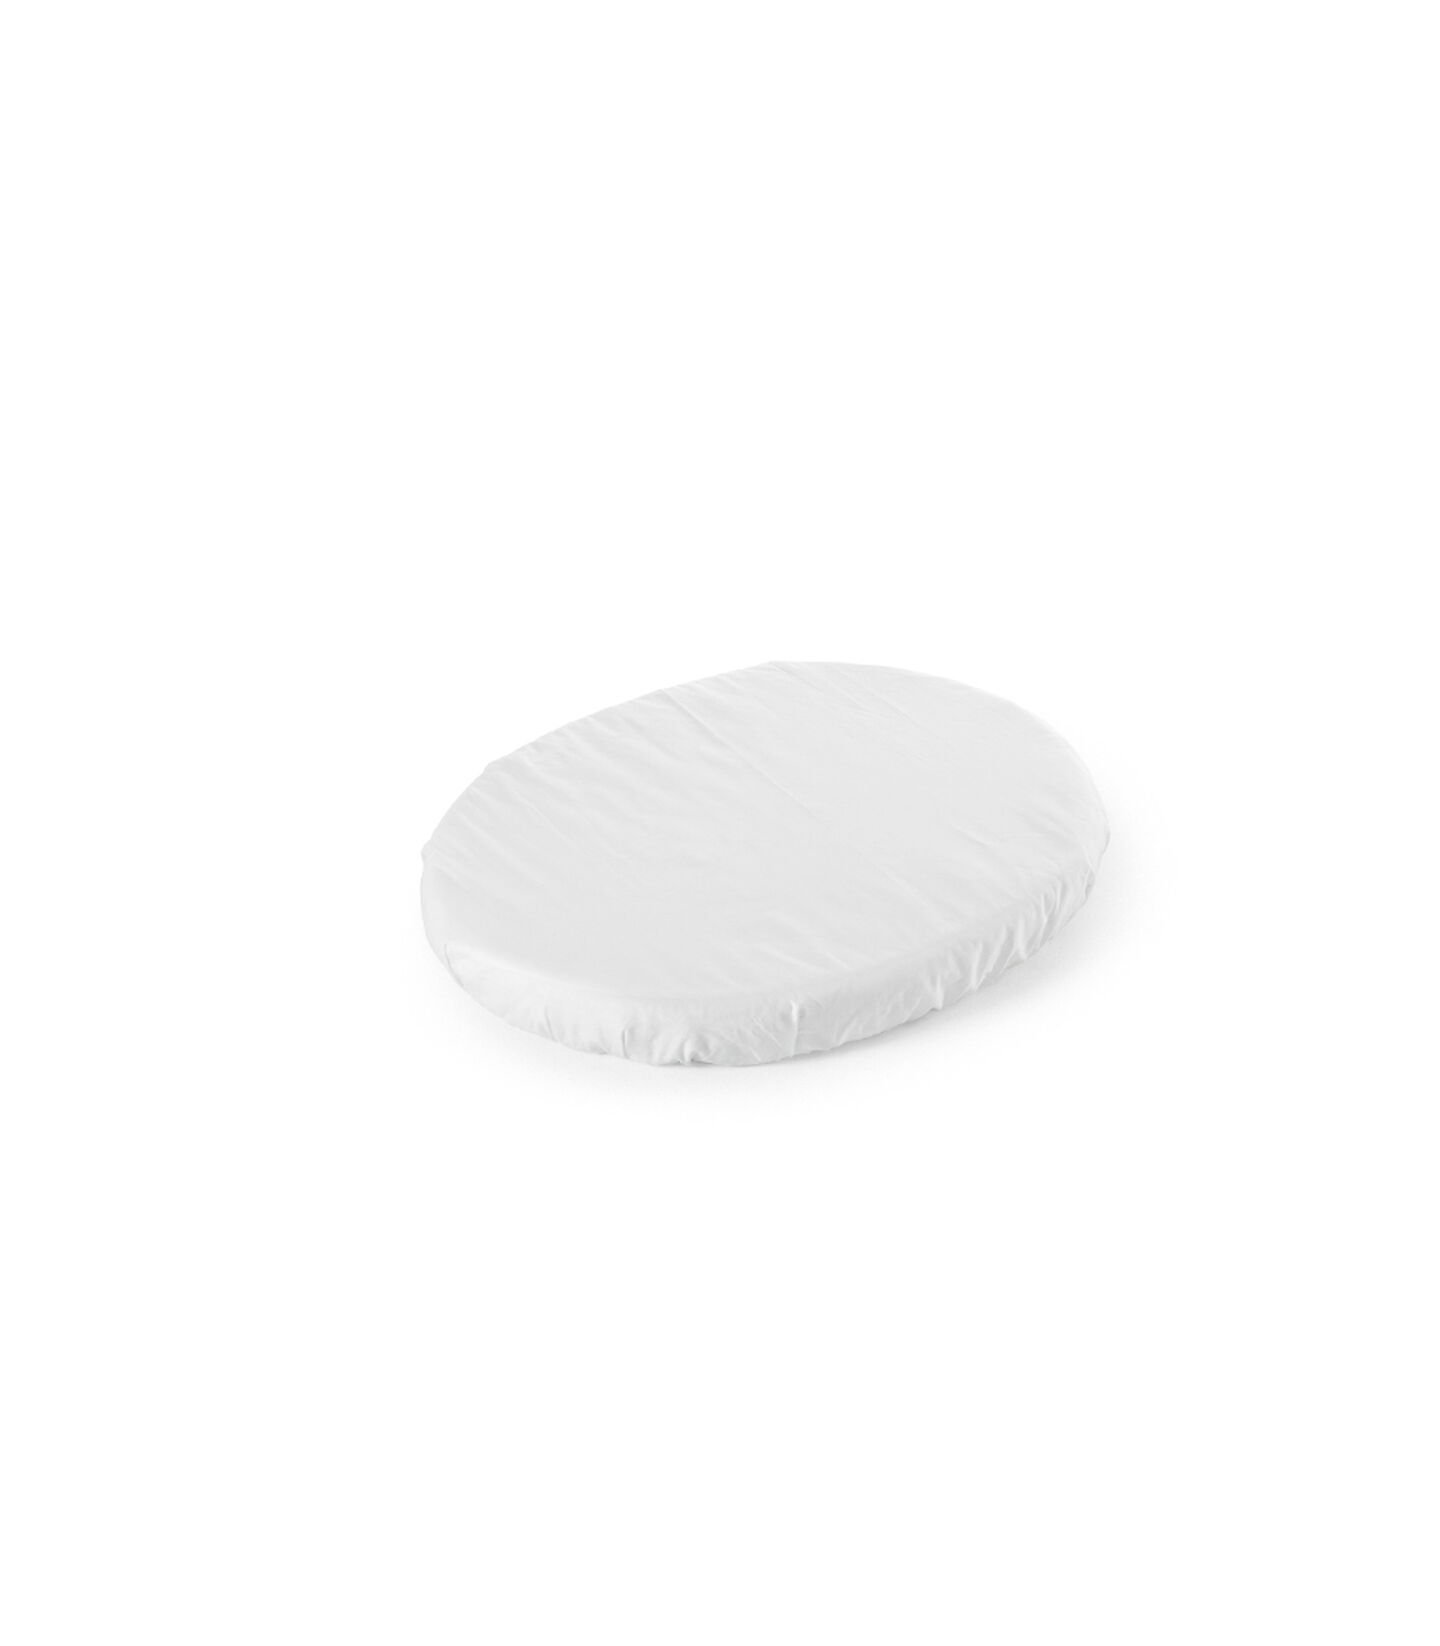 Stokke® Sleepi™ Mini Fitted Sheet Blanc, Blanc, mainview view 2